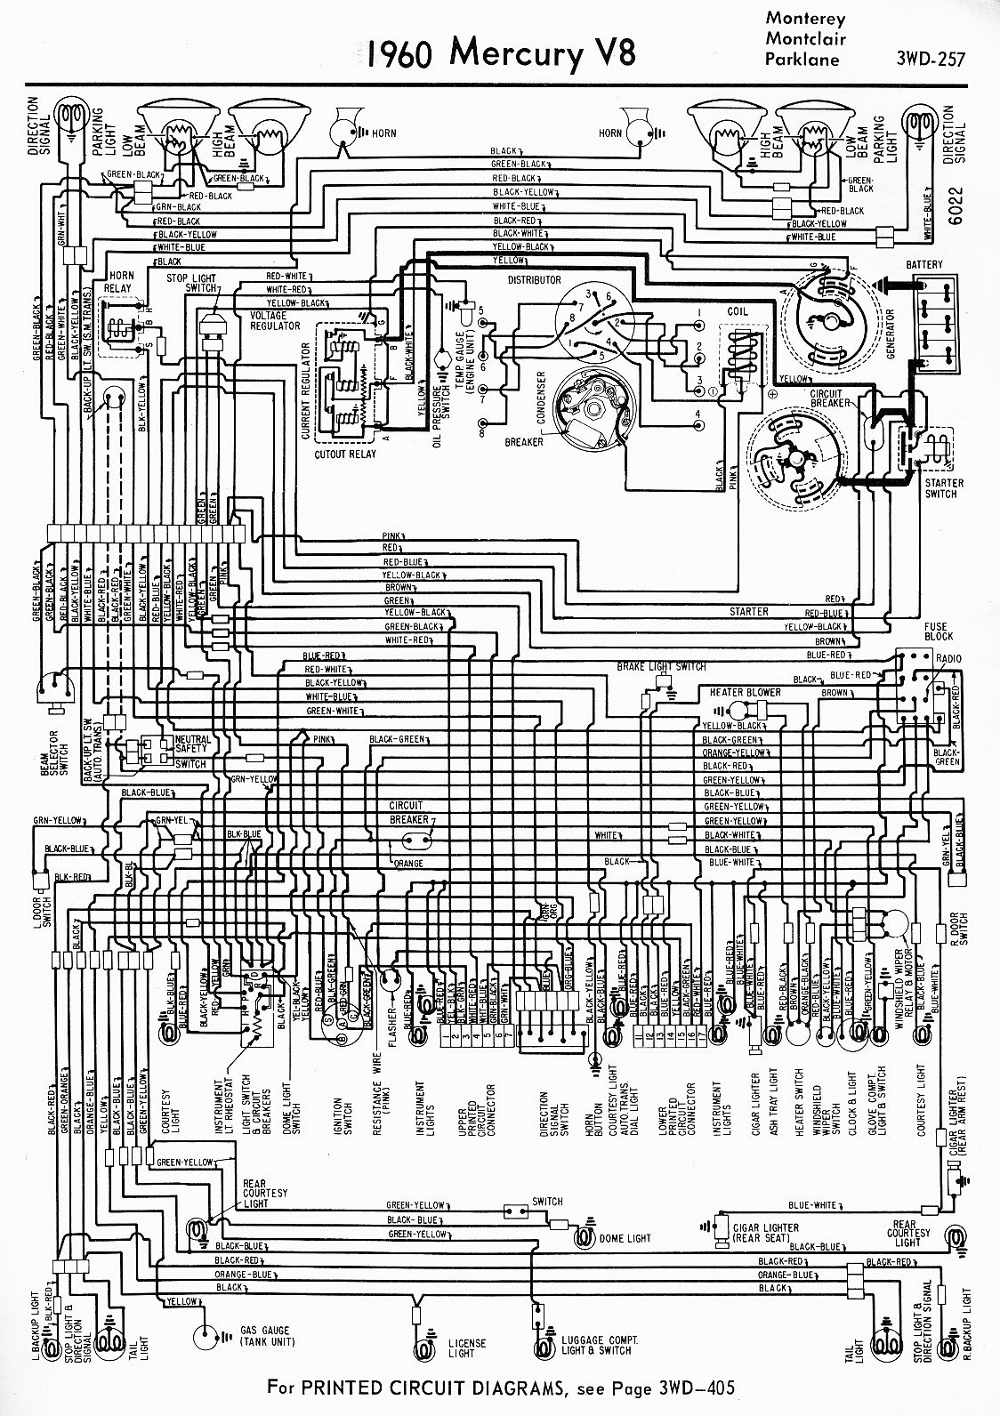 small resolution of 2005 mercury monterey wiring diagram wiring diagram tags 2005 mercury monterey engine diagram